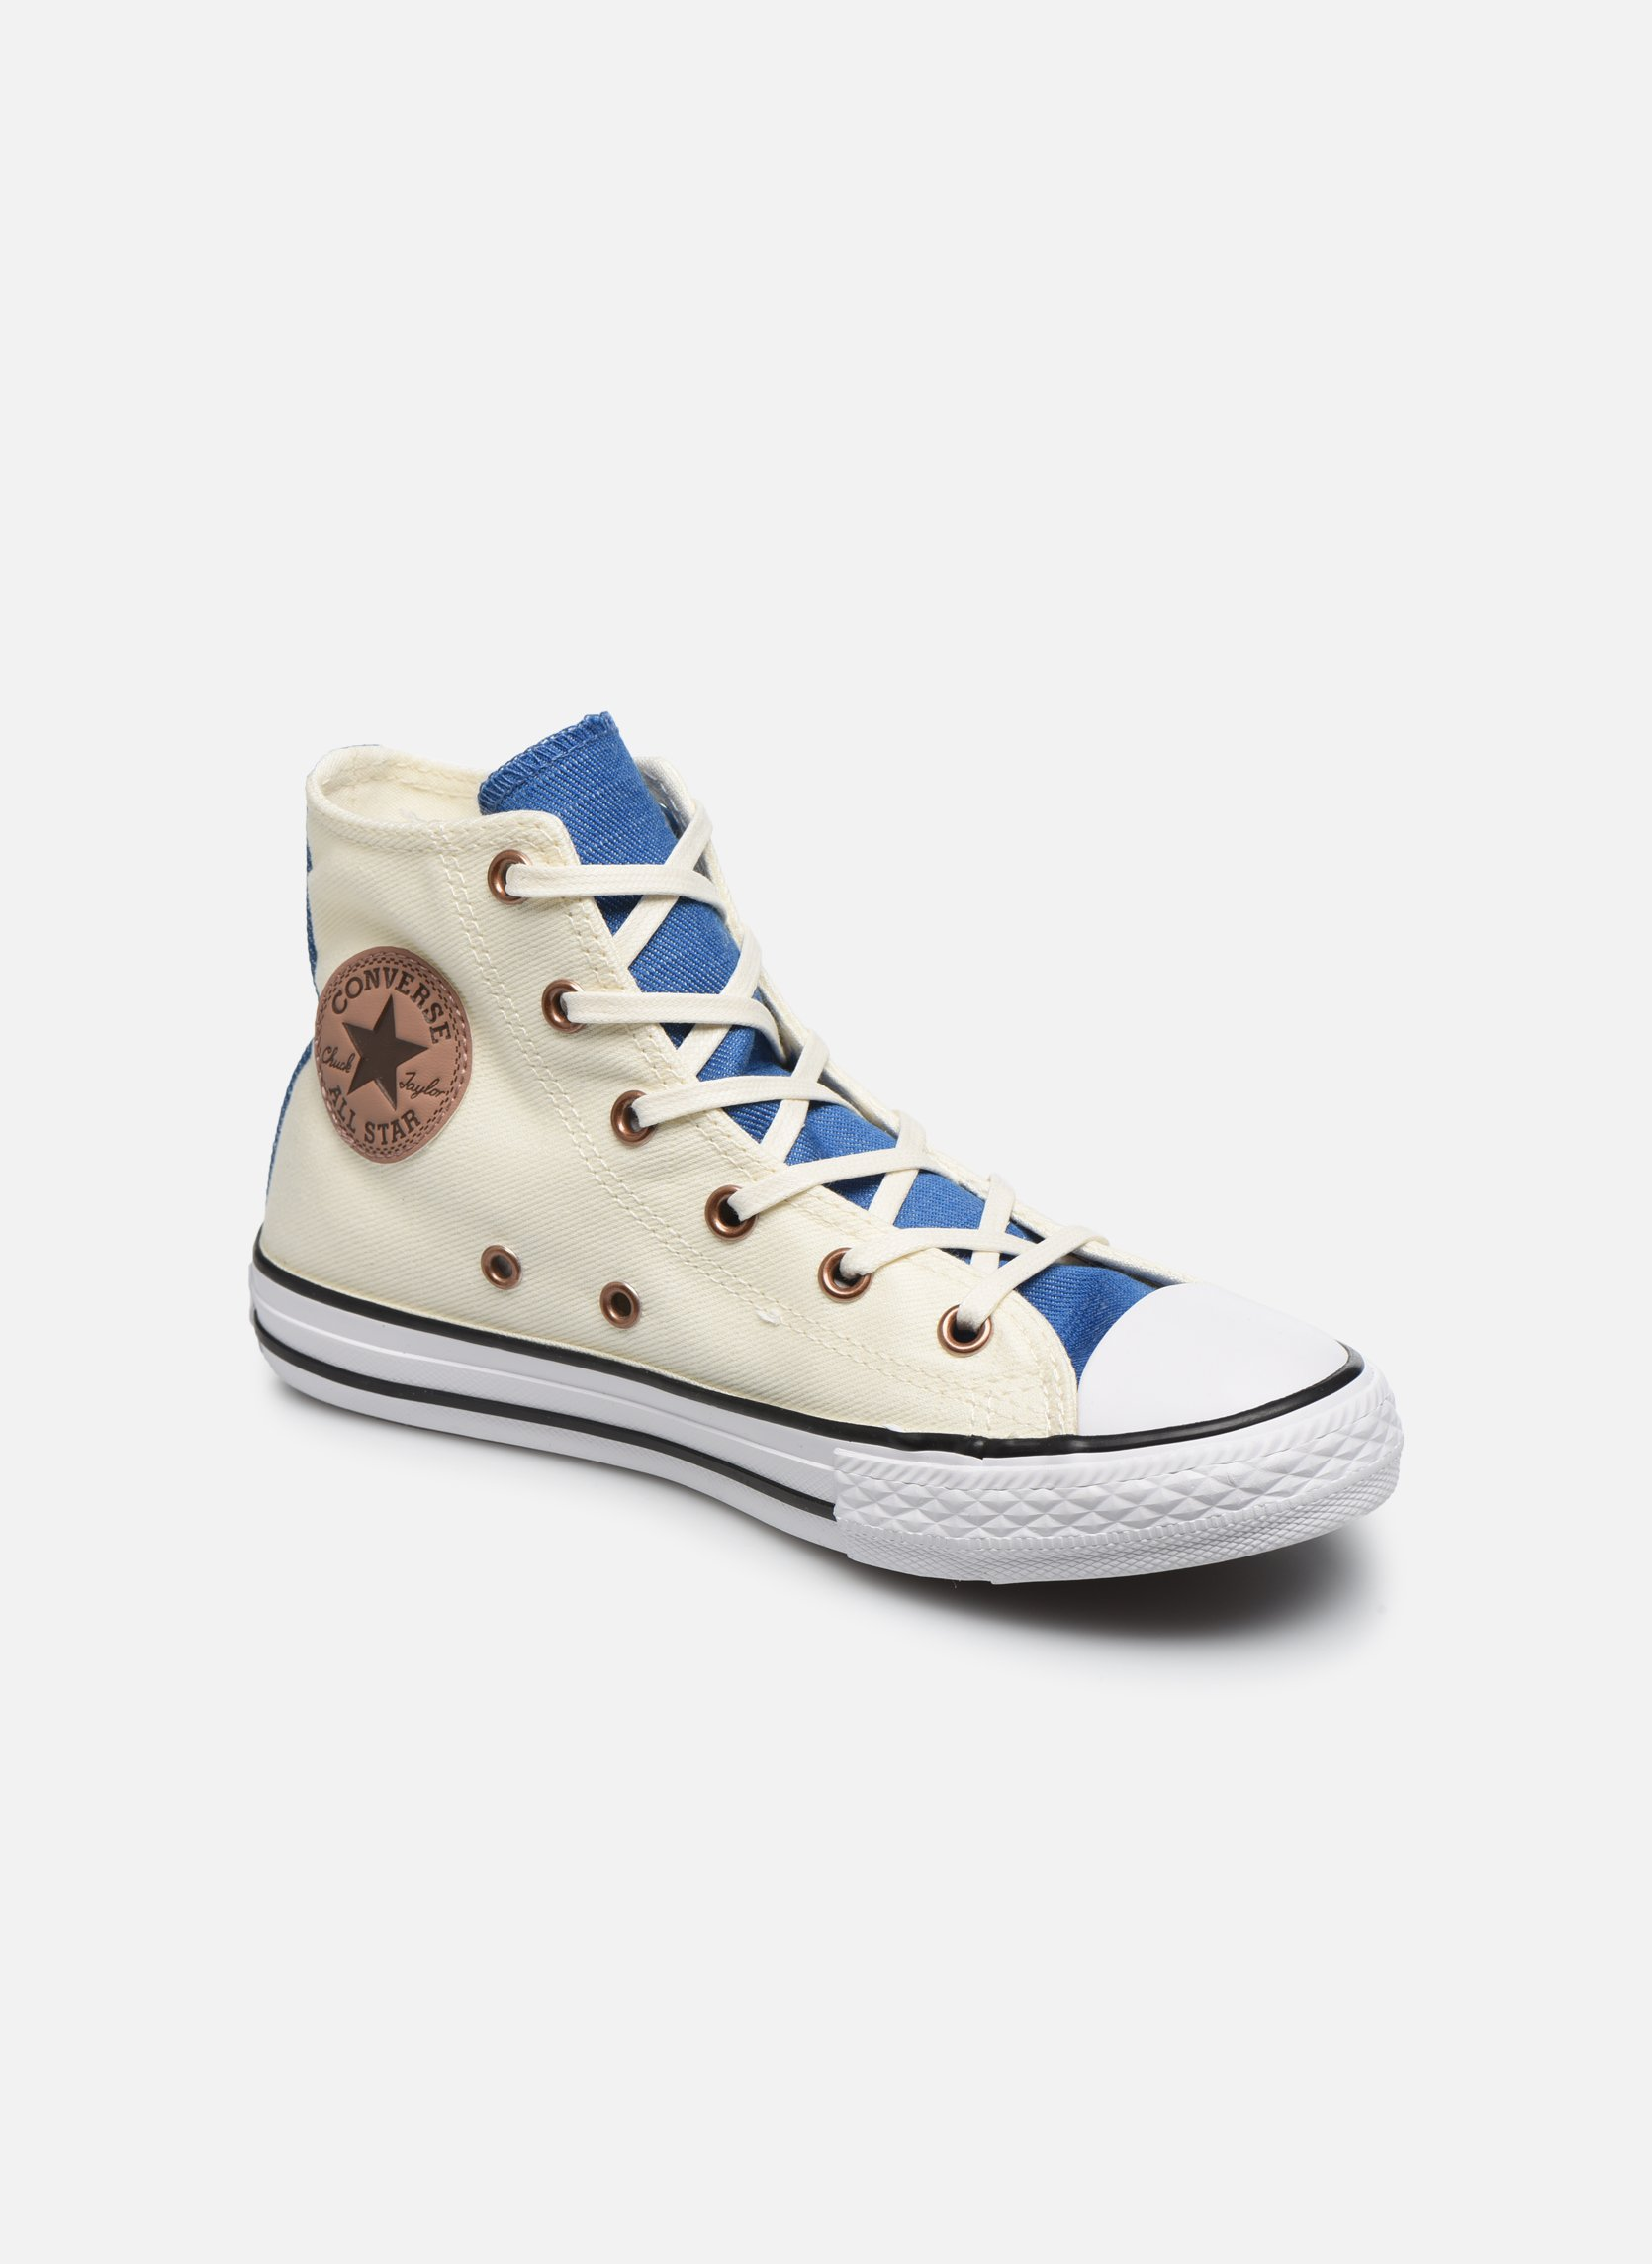 Chuck Taylor All Star Hi Two Color Chambray